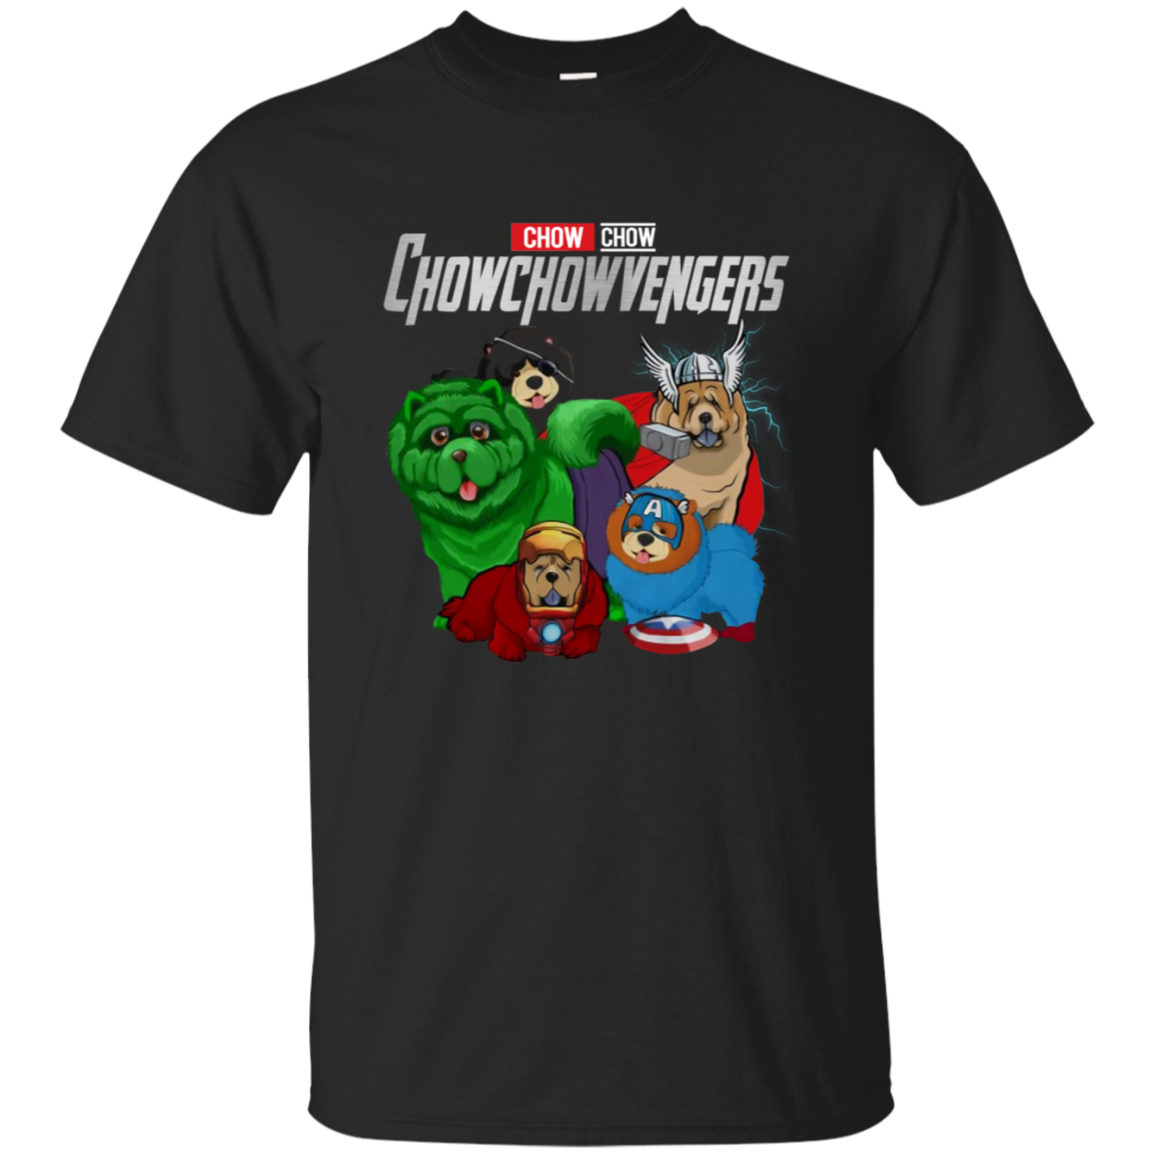 Funny Chowchow dog lovers Gift marvel avengers CHOWCHOWVENGERS T-shirt